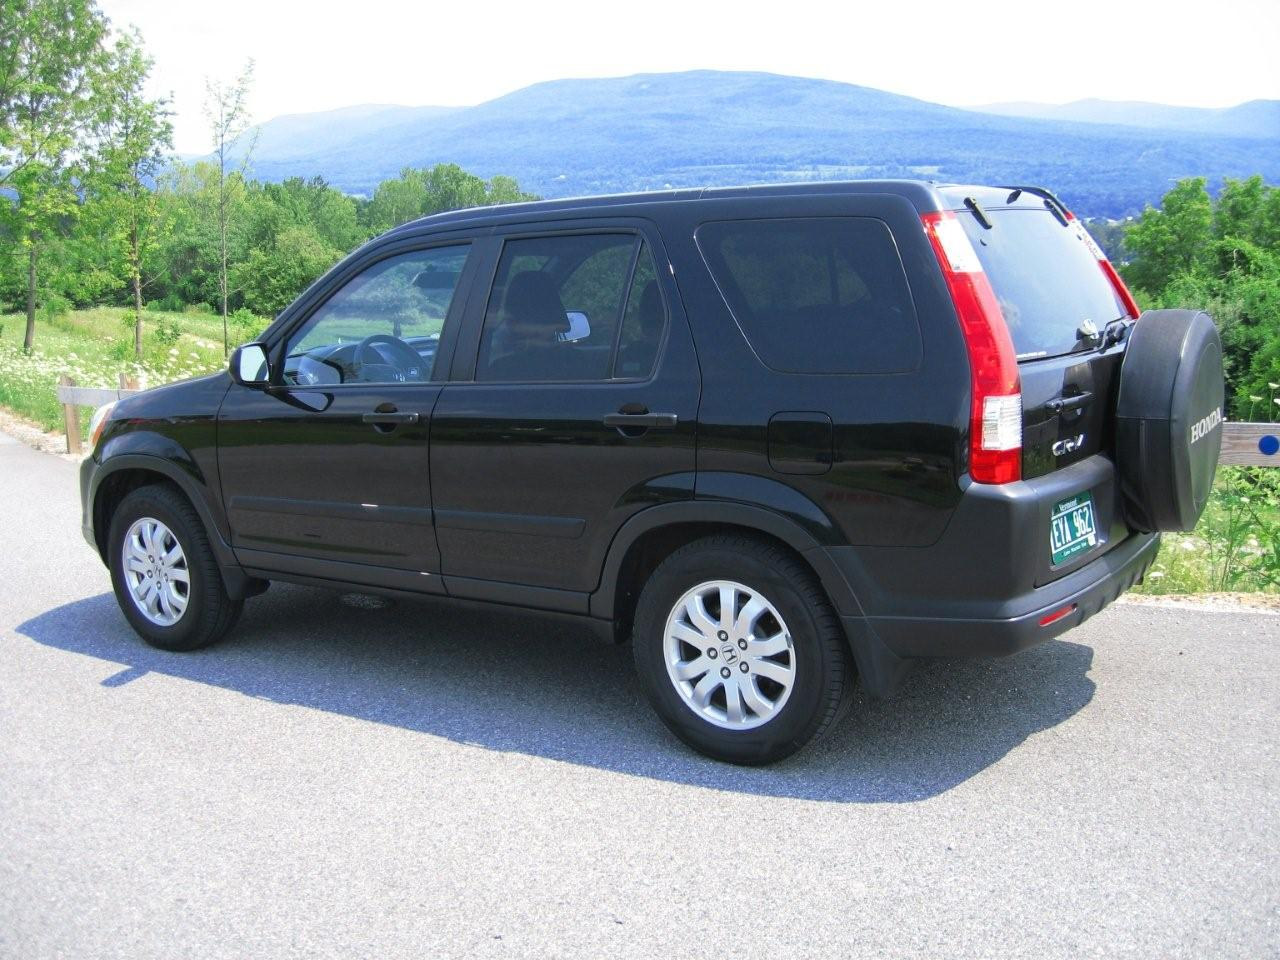 2006 honda cr v new cars used cars car reviews autos weblog. Black Bedroom Furniture Sets. Home Design Ideas